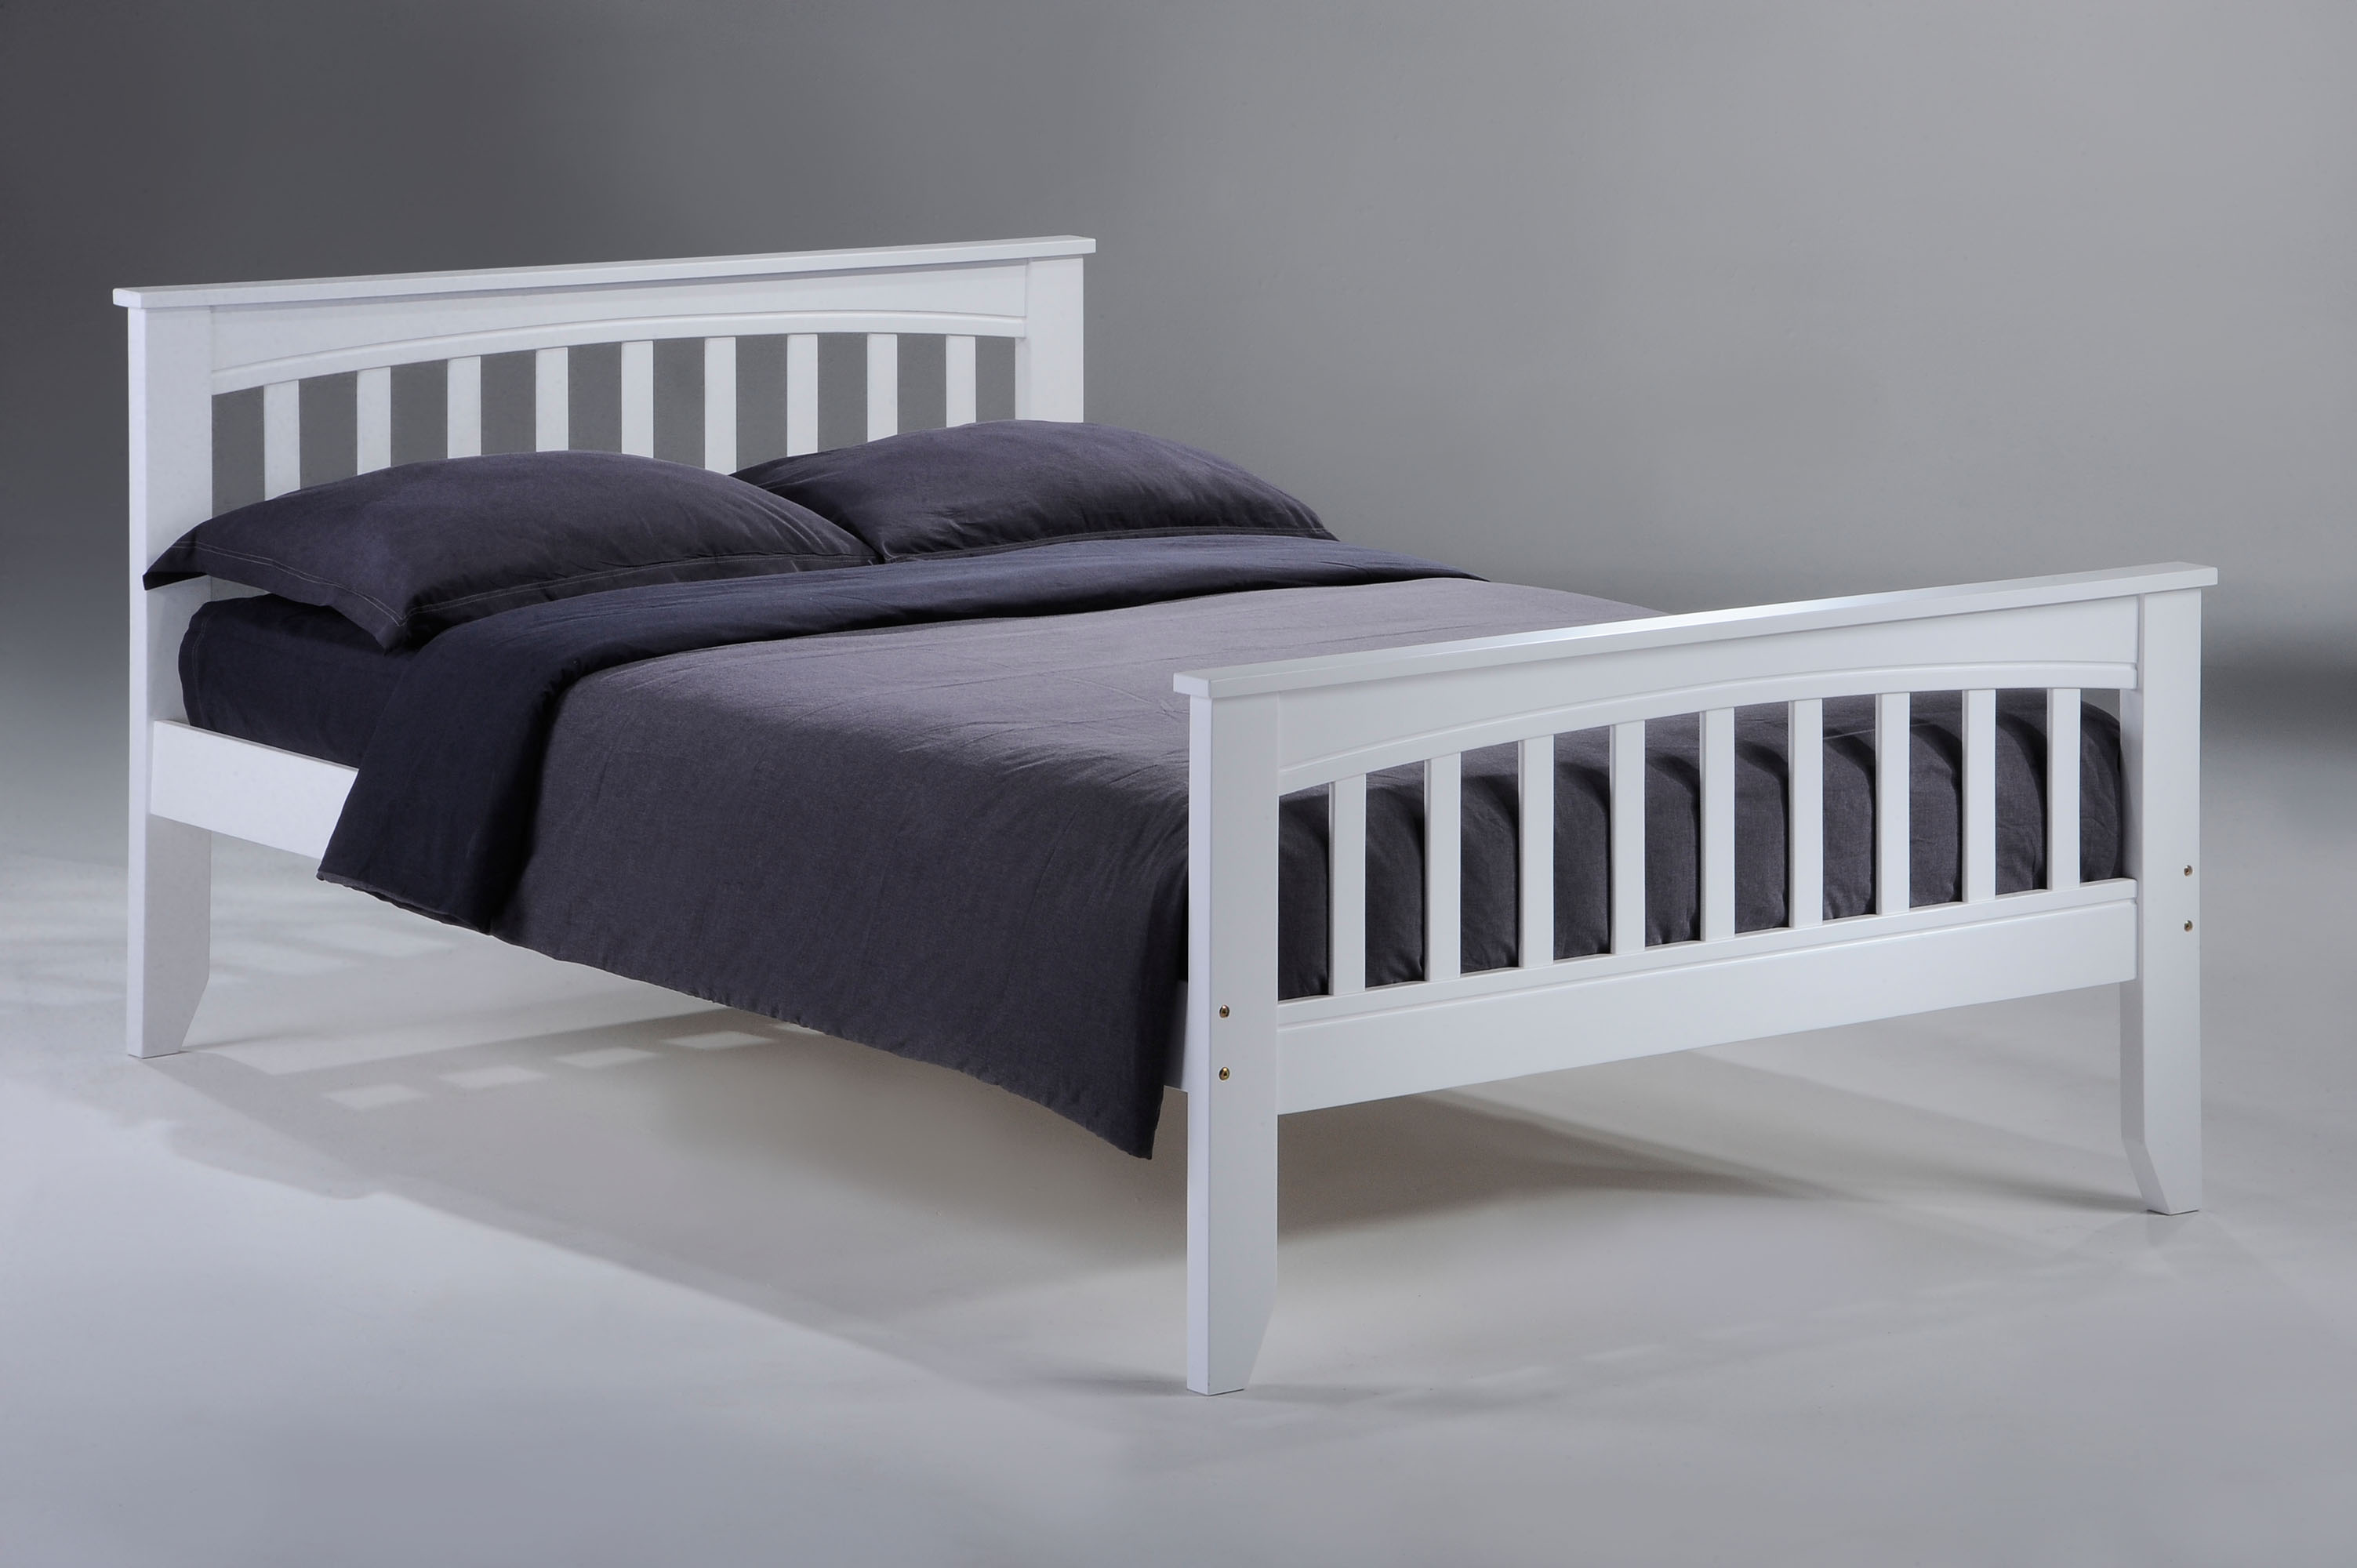 Sasparilla Kid Bed Frame Night Amp Day Futon D Or